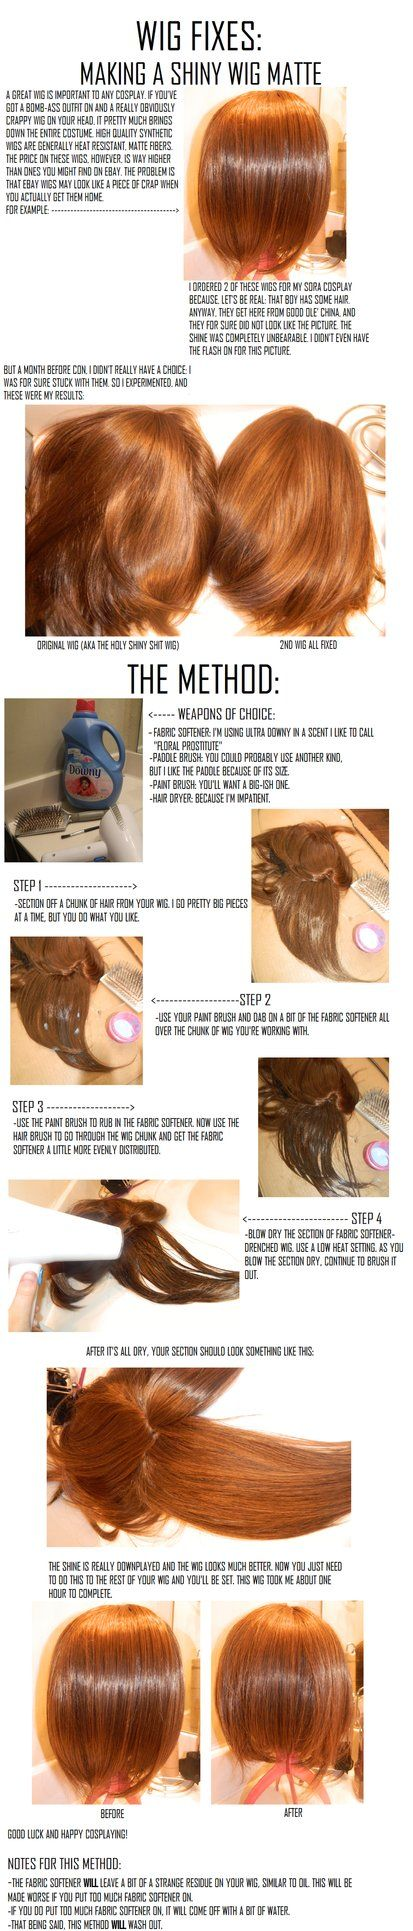 Cosplay Wigs: Taking away wig shine by ~cosplay--tutorials on deviantART